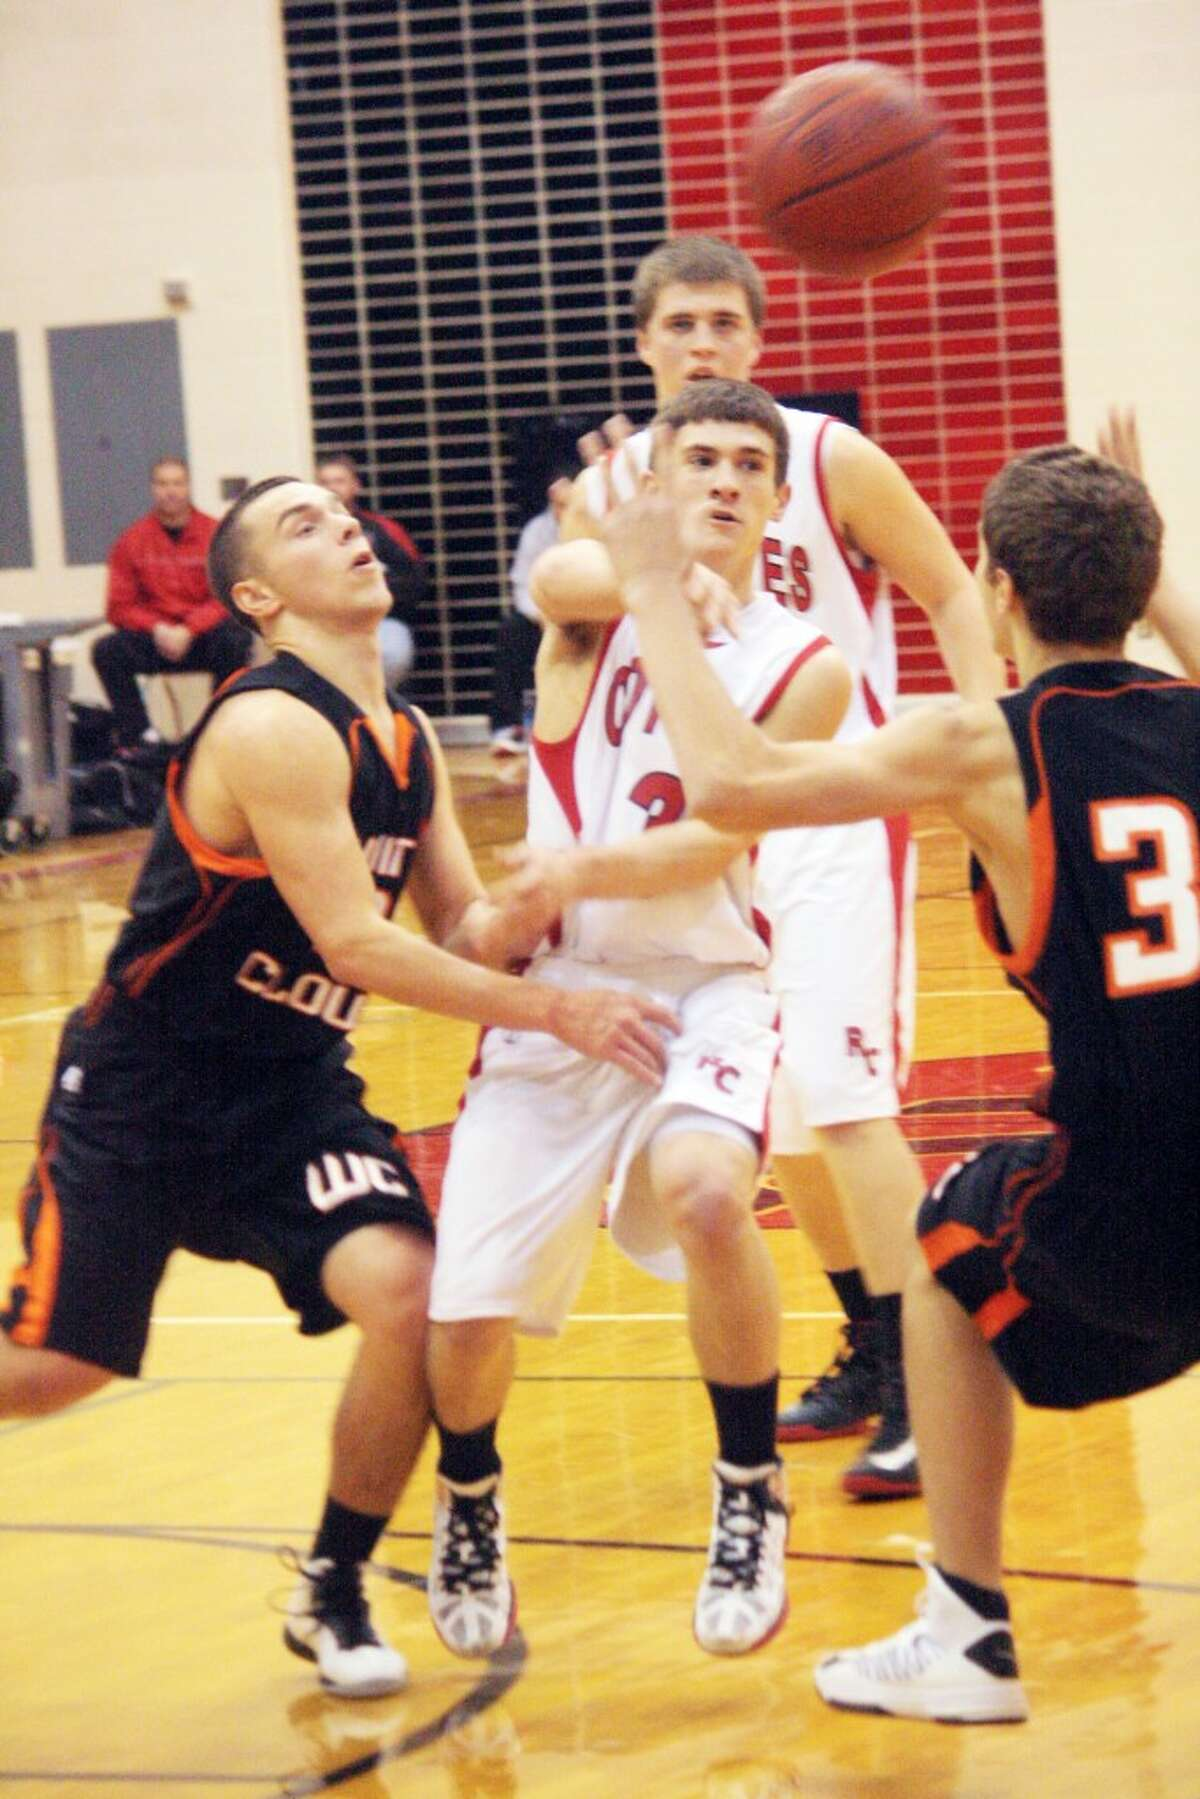 DRAWING ATTENTION: Reed City guard Joshua Saez (middle) makes a pass through traffic during Monday's game against White Cloud. The Coyotes defeated White Cloud 73-37 to improve to 6-4 on the season. (Herald Review photo/John Raffel)